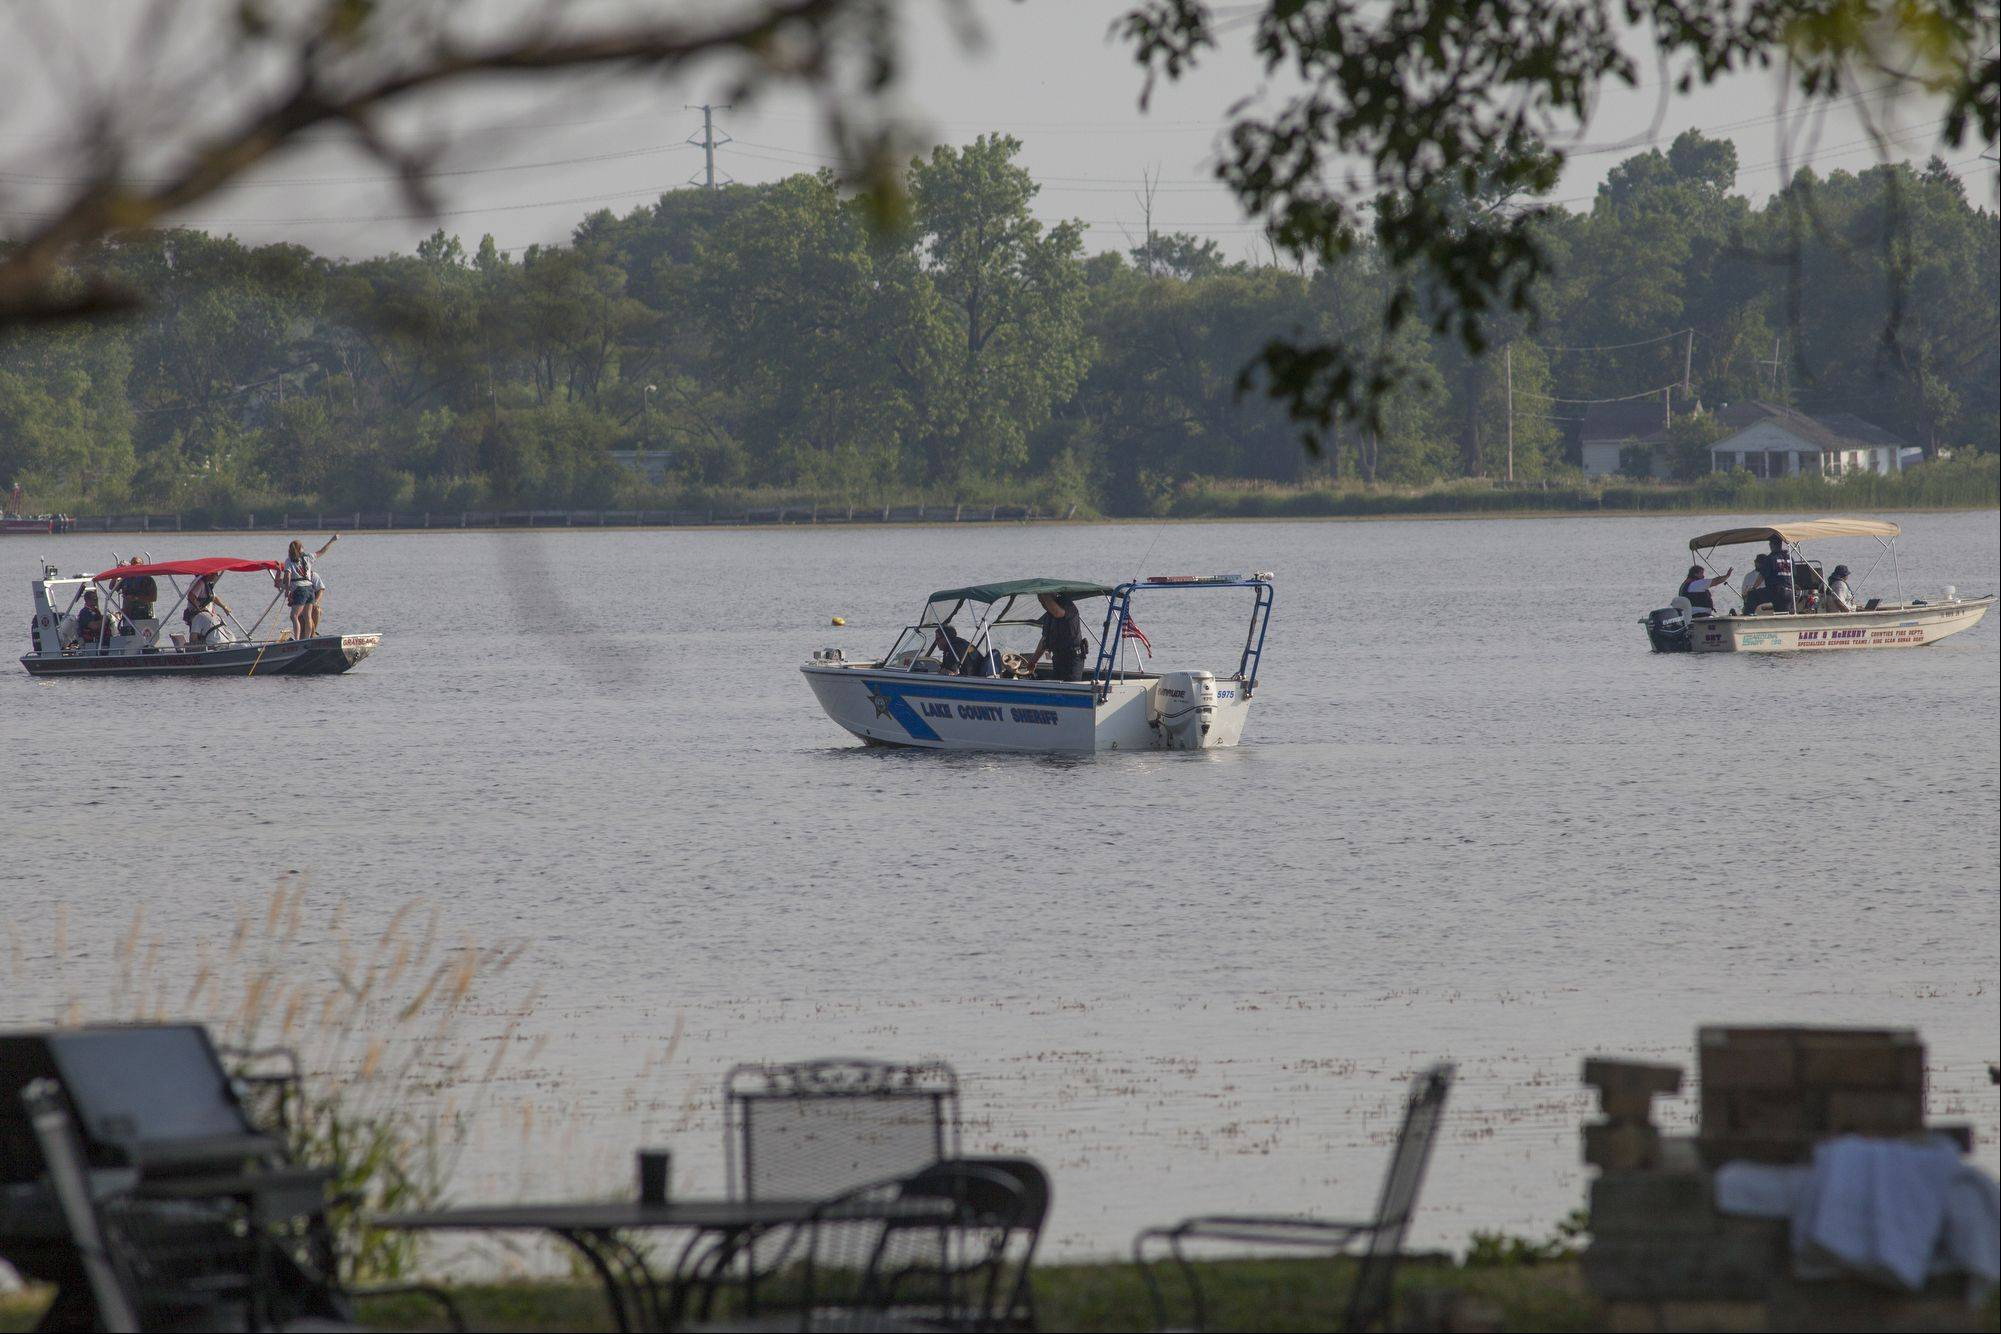 Crews used sonar technology to search for the missing man's body in Loon Lake on Thursday.